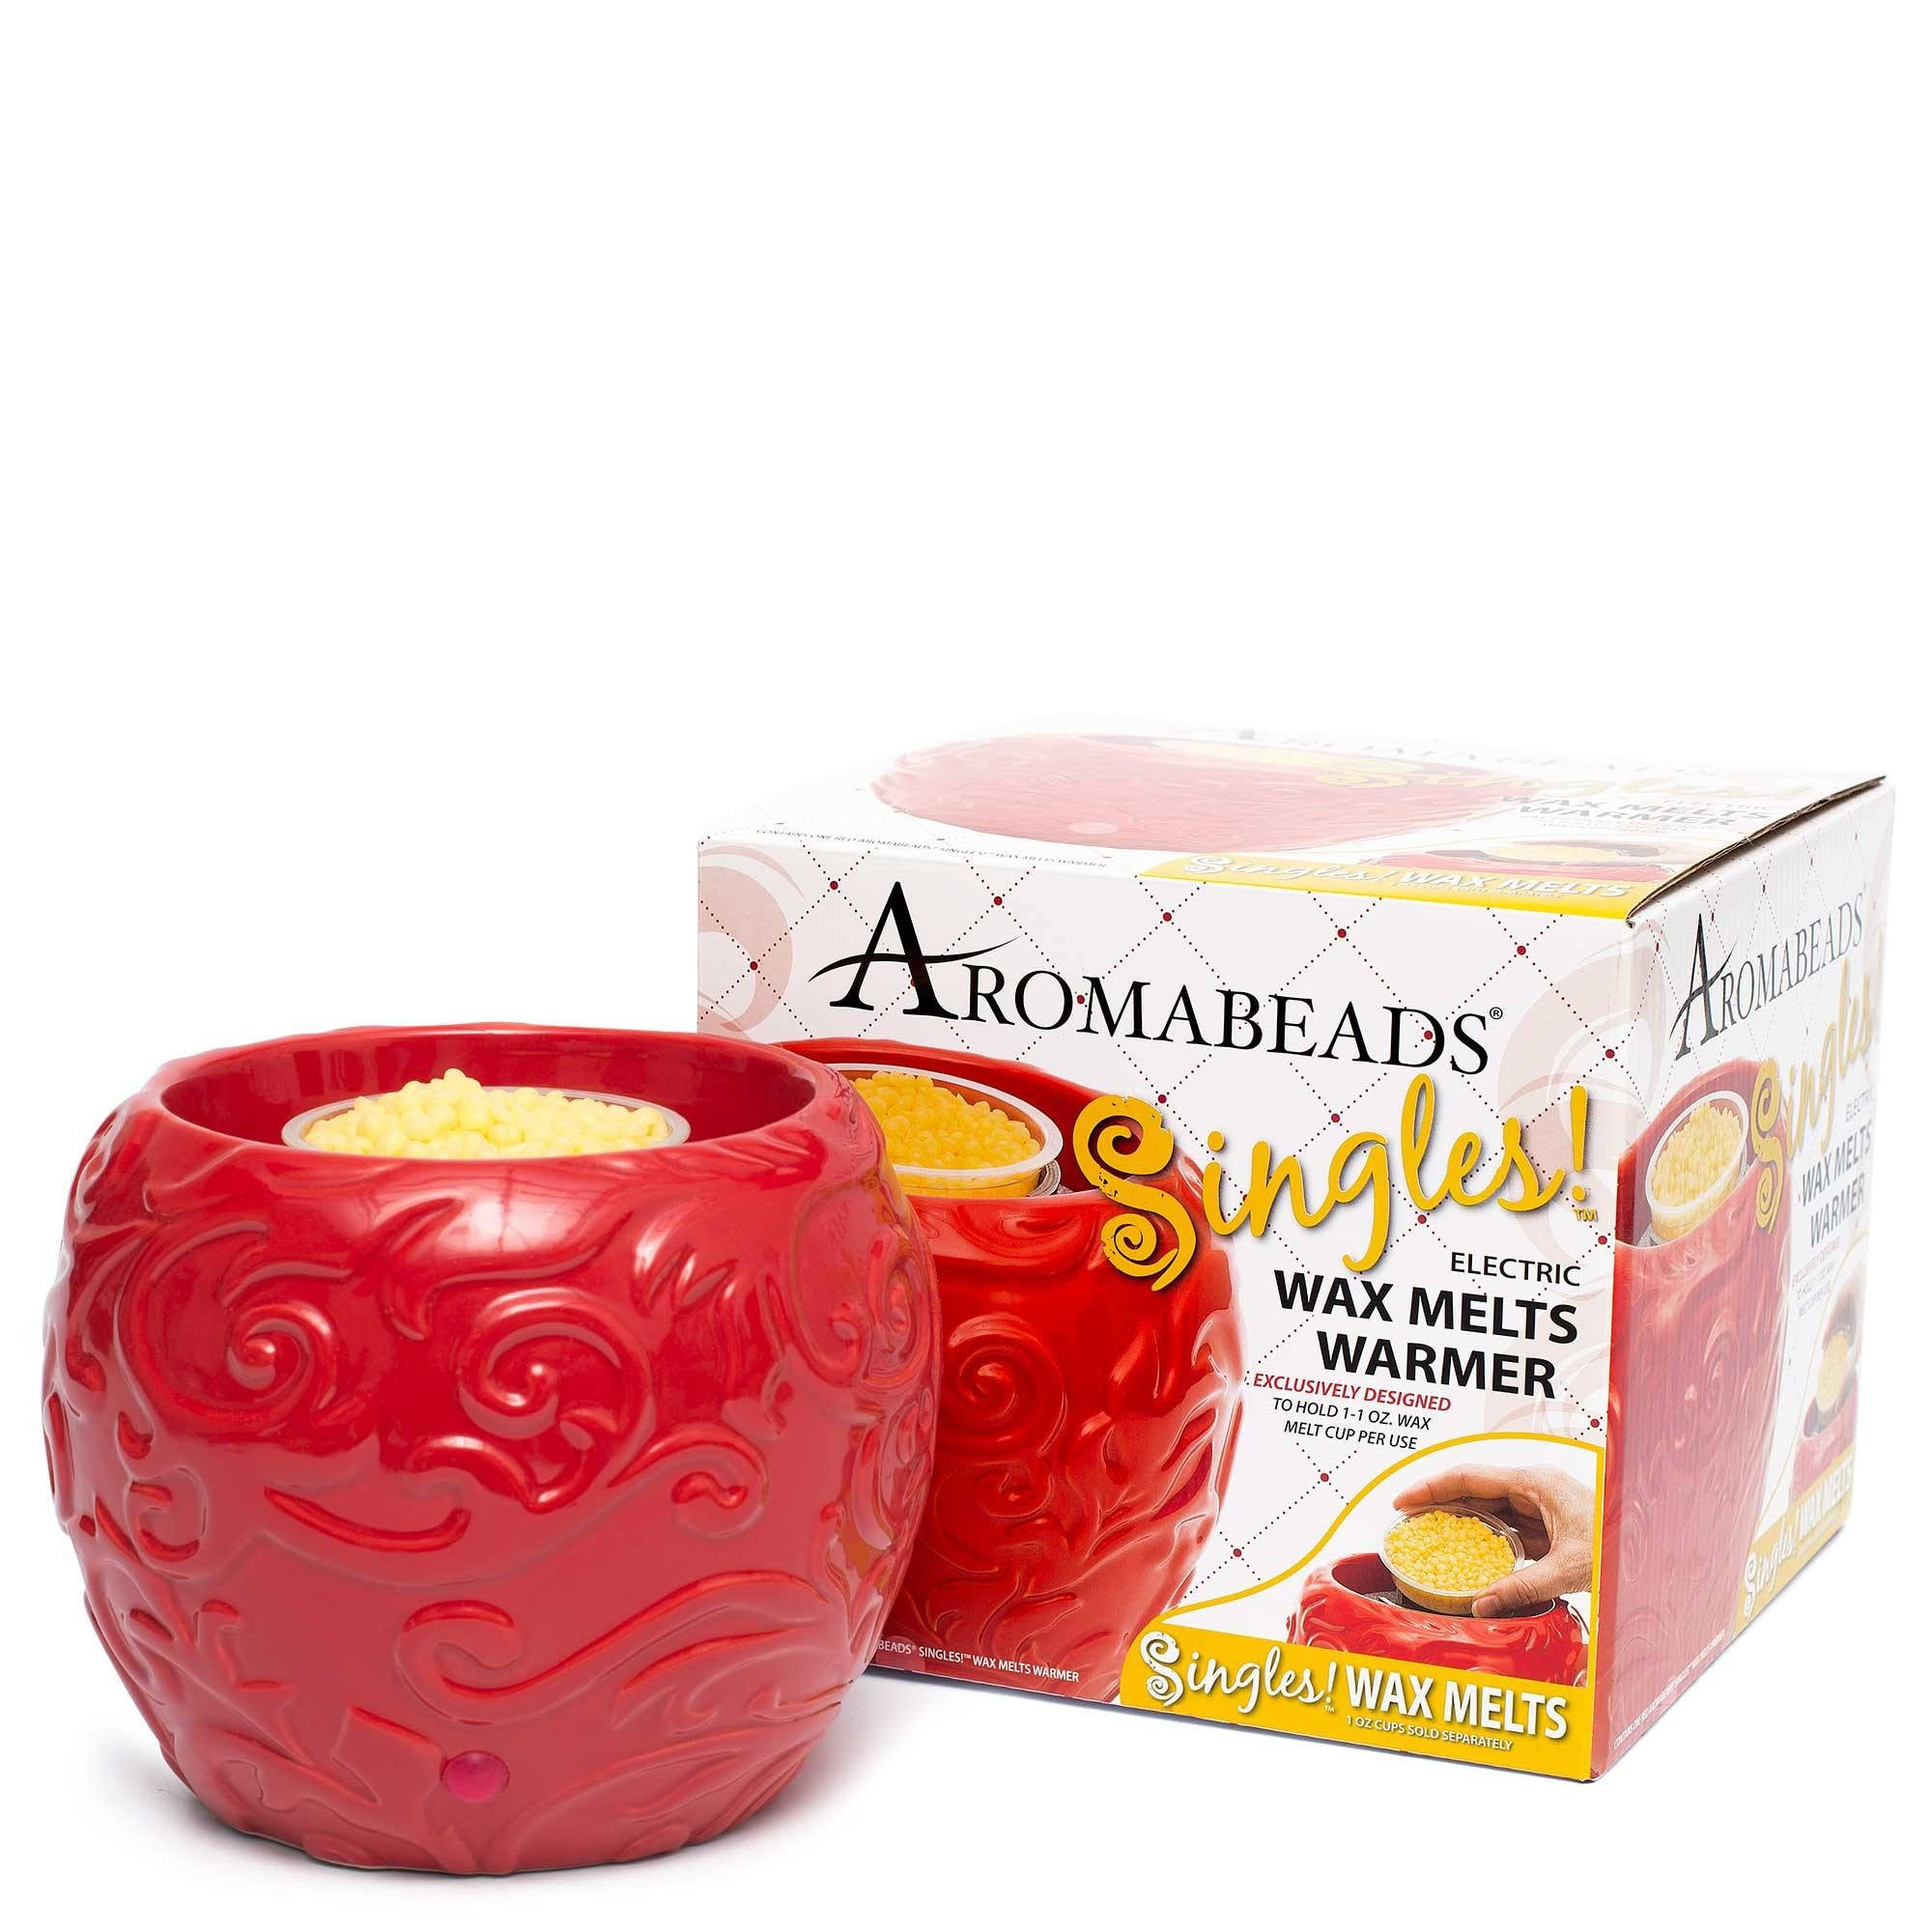 Aromabeads Singles Woodland Pine Scented Wax Melts - Candlemart.com - 2